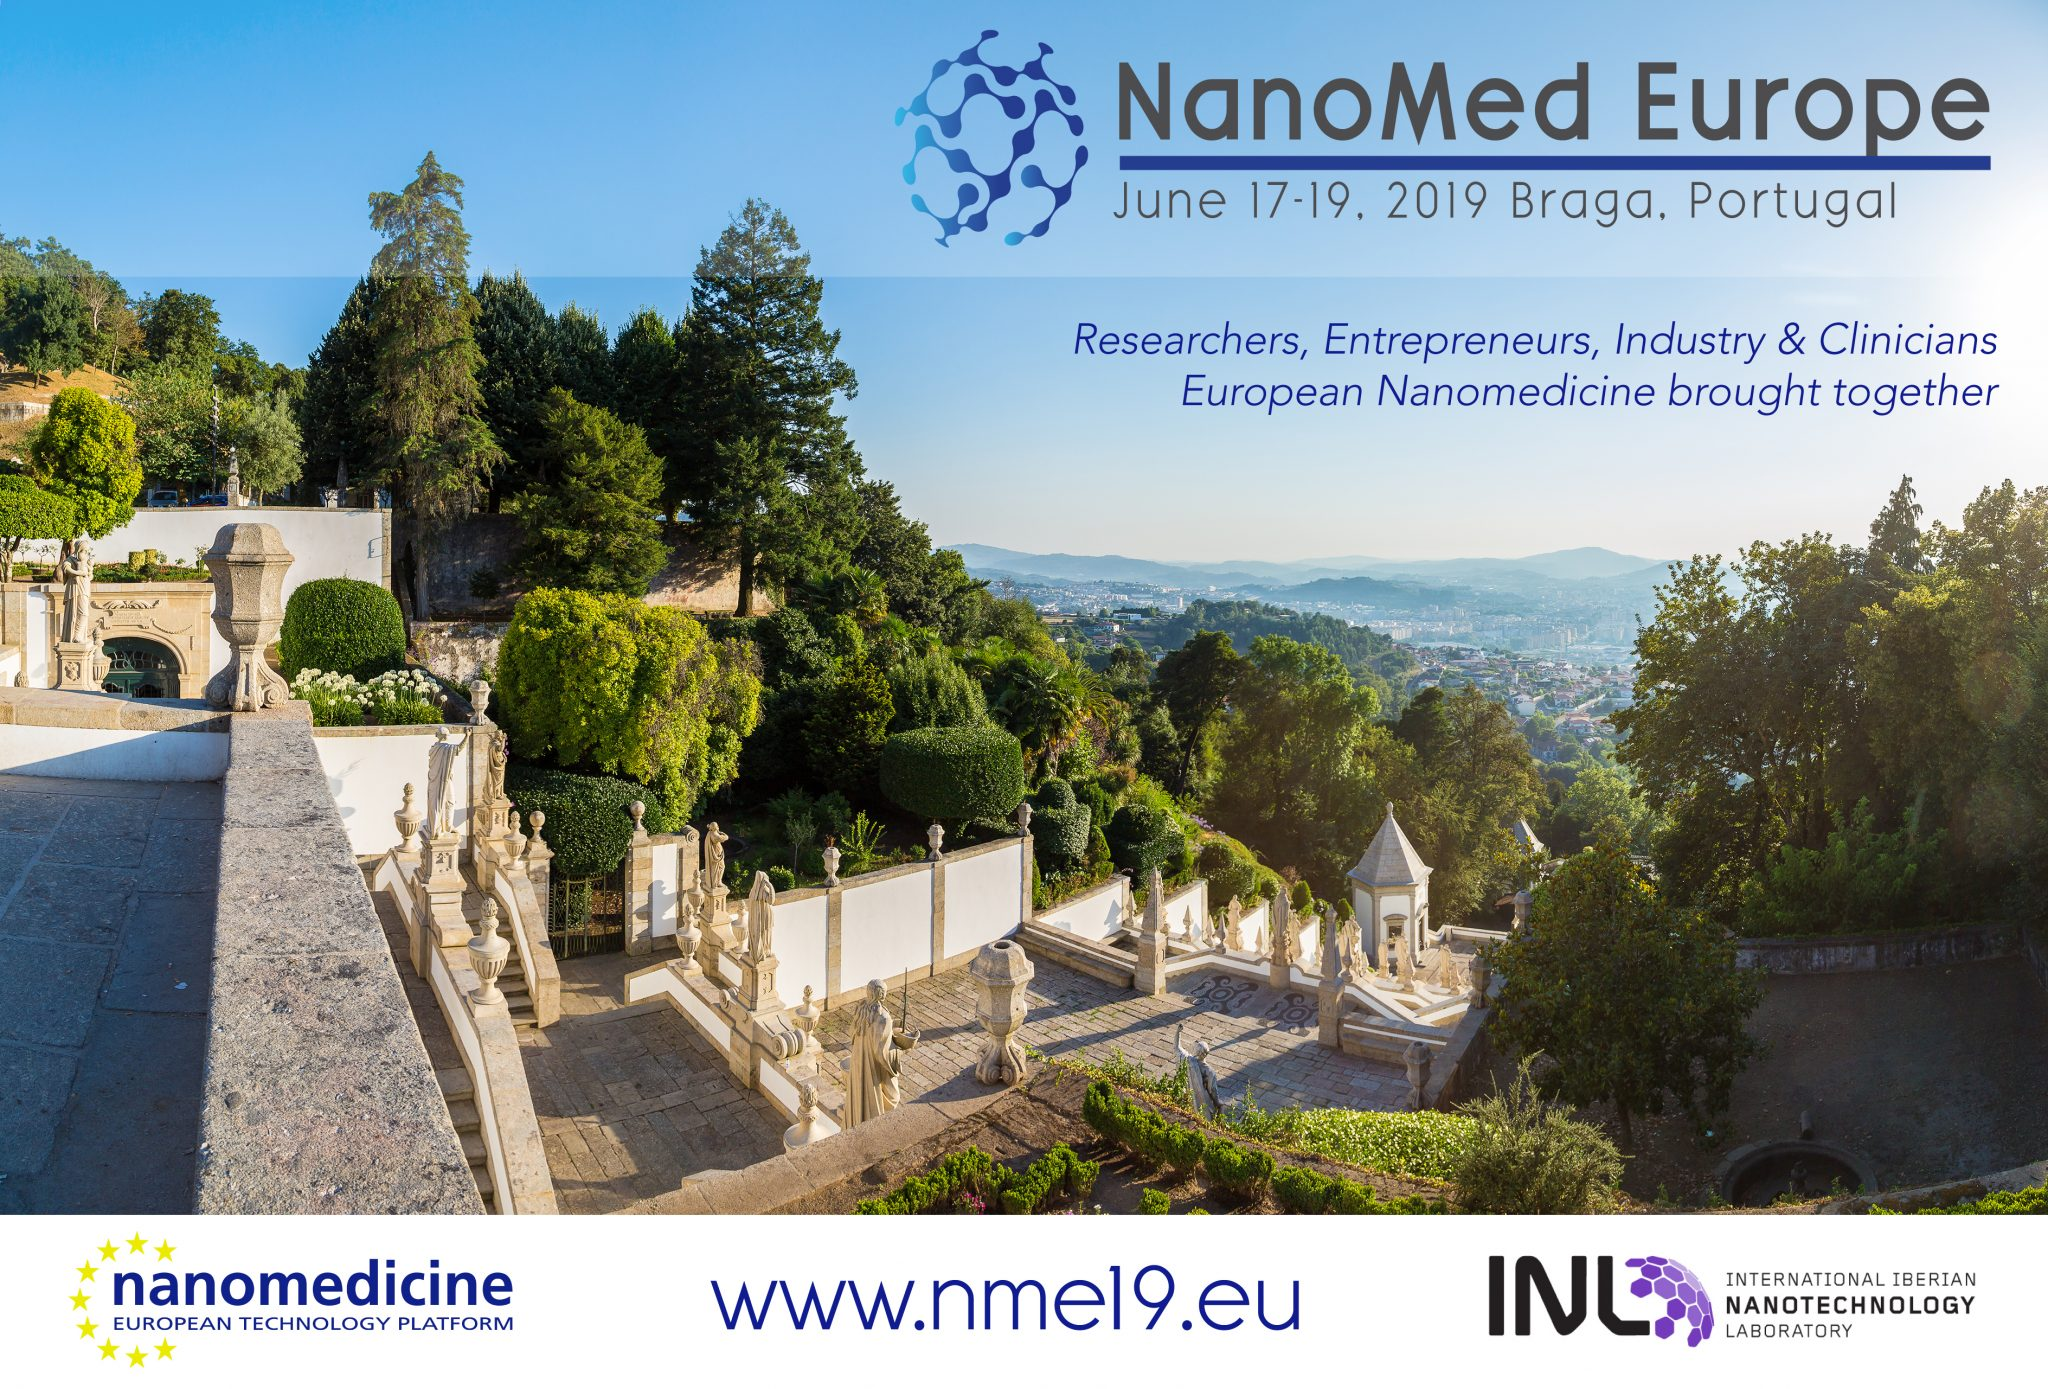 Nanomed Europe 2019, June 17-19, Braga (Portugal): ABSTRACT SUBMISSION & REGITSRATION OPEN!